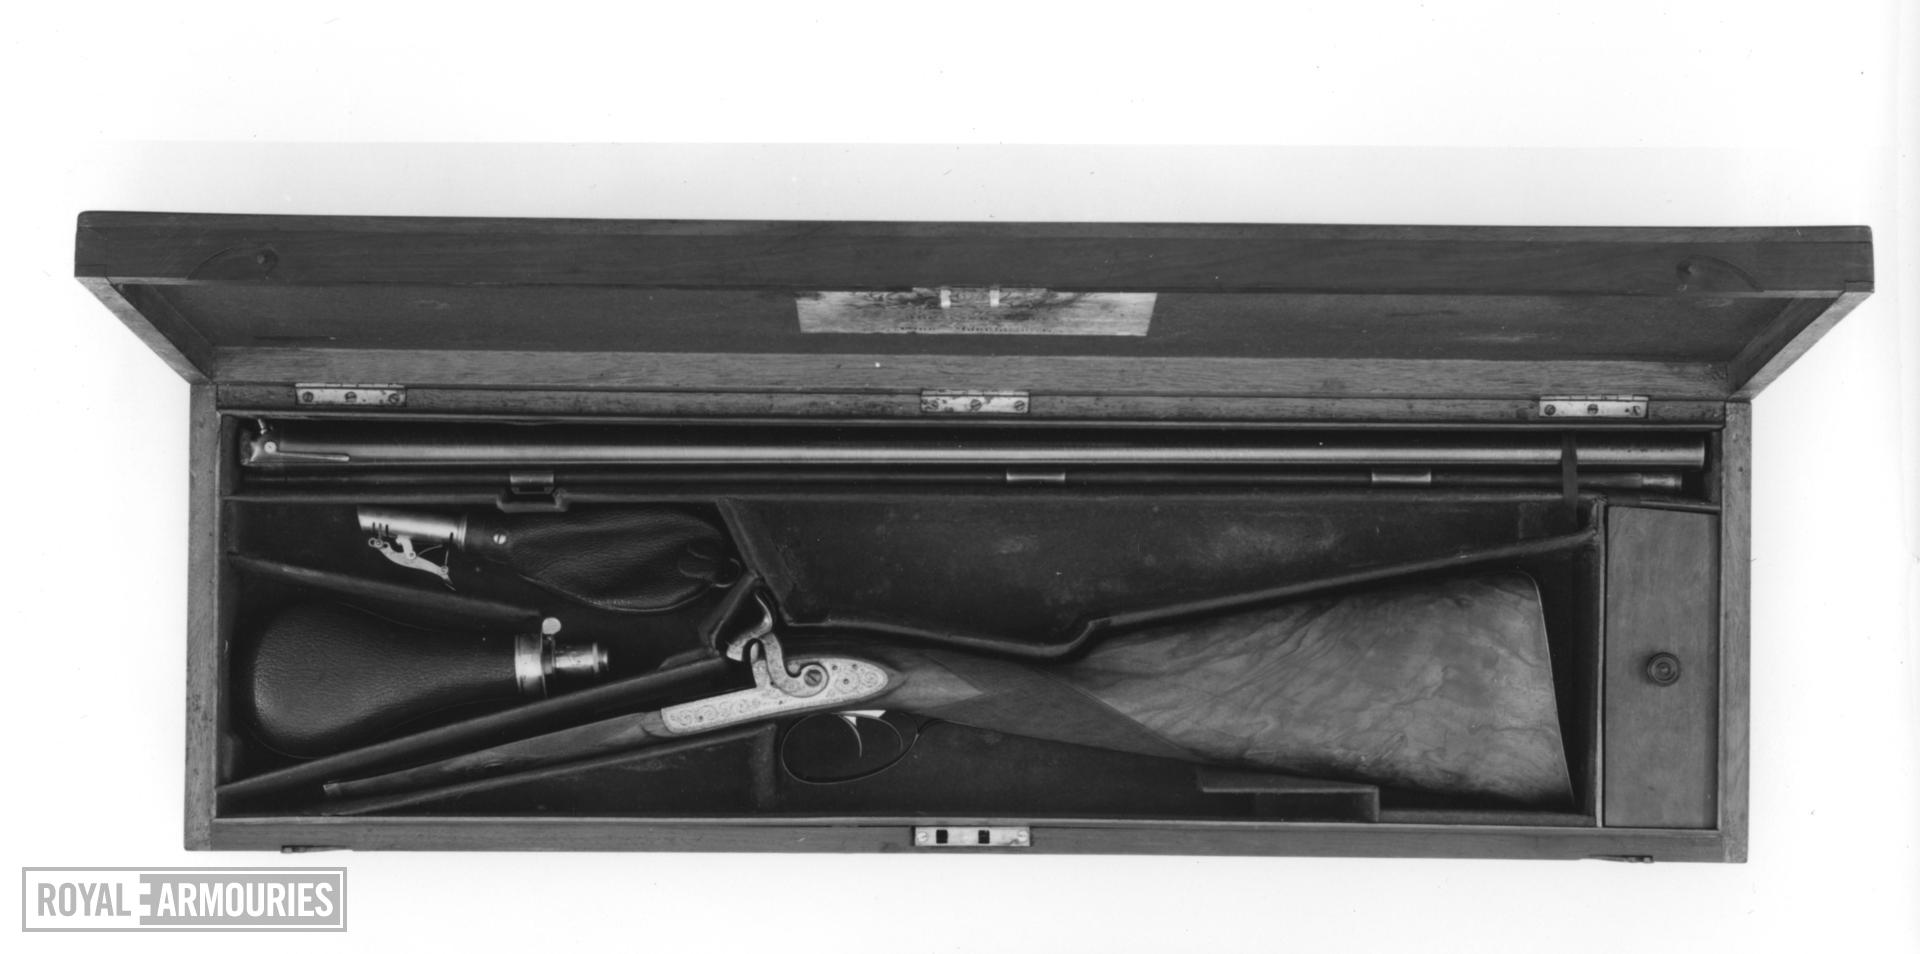 Percussion double-barrelled shotgun - By J. Purdey